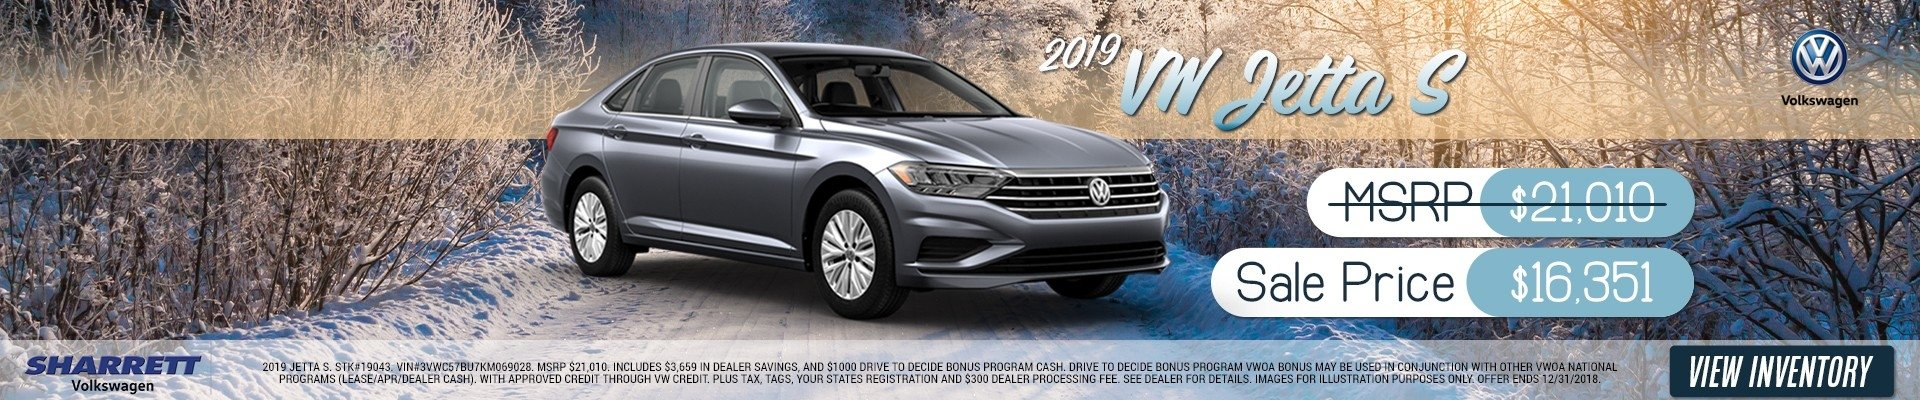 2019 VW Jetta S for $16,351